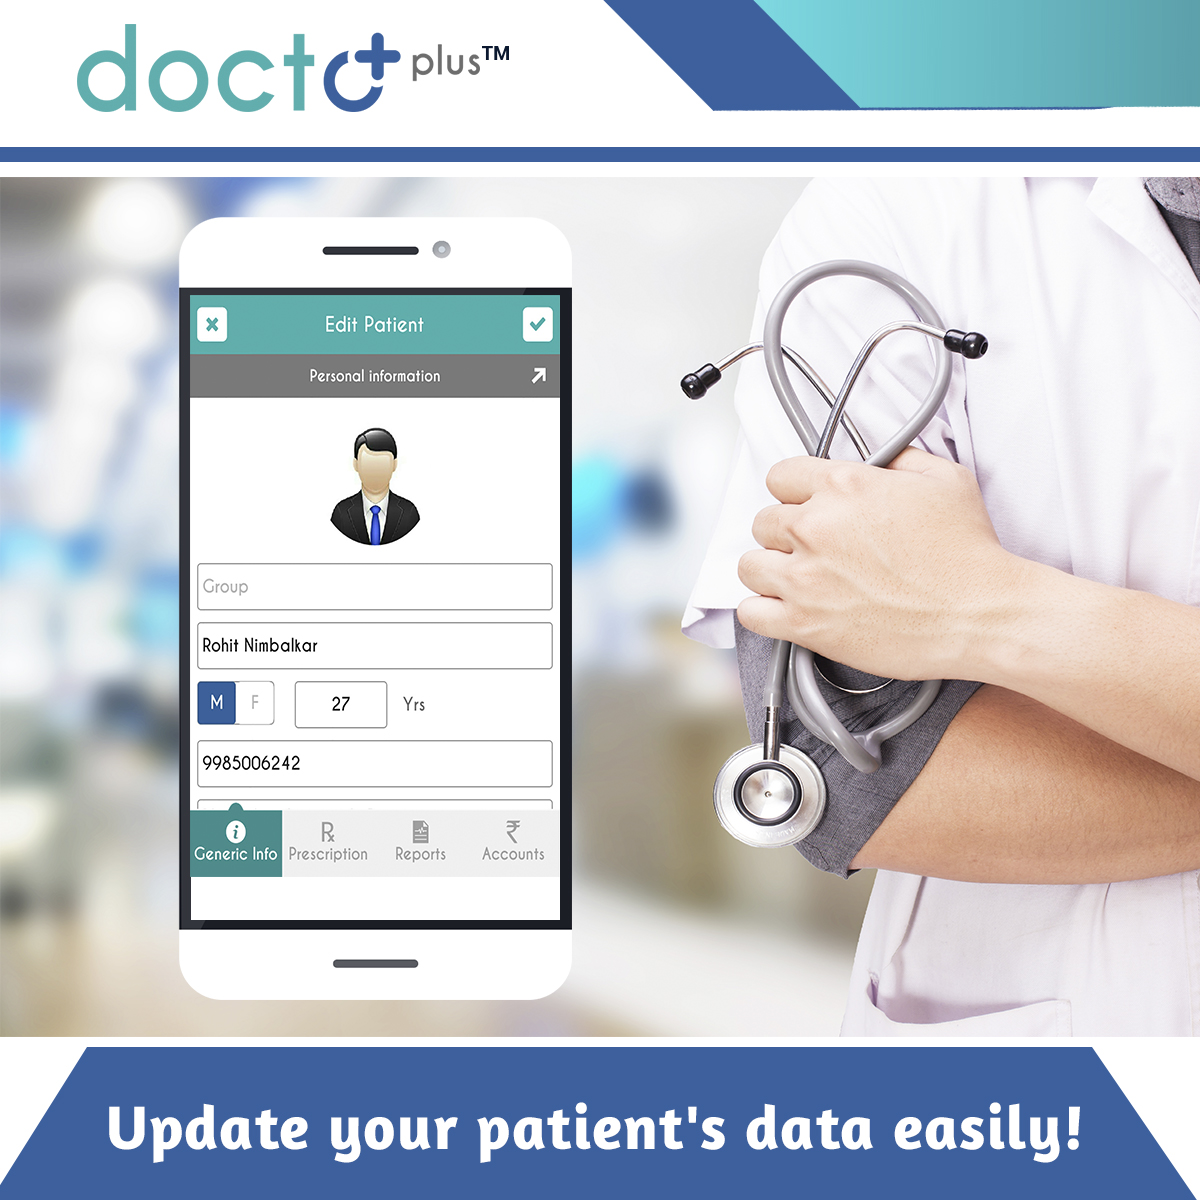 Download DoctoPlus™ for smoother OPD management! Download the App: https://goo.gl/YWr3WK Reach Us @ https://doctoplus.in/ #HealthyLiving #Clinics #Hospitals #playstore #EasyToUse #health #wellness #Life #healthylife #Doctor #management #OPDmanagement #healthcare #OPDpic.twitter.com/A8IBTzftib